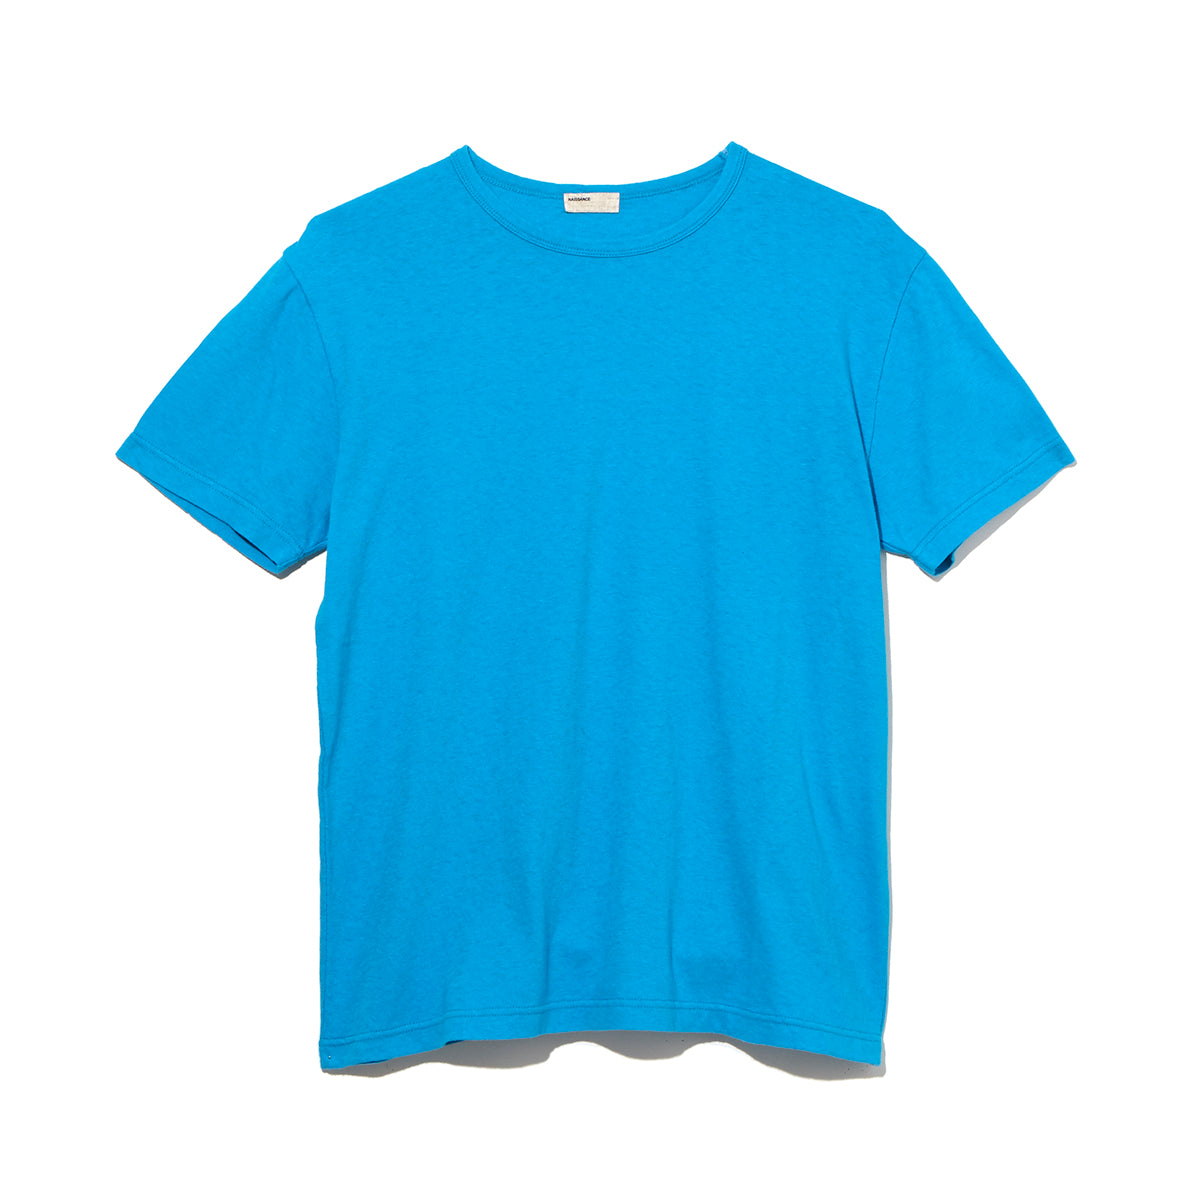 SLUB T-SHIRT / BLUE (21A-NSA-CS-13)